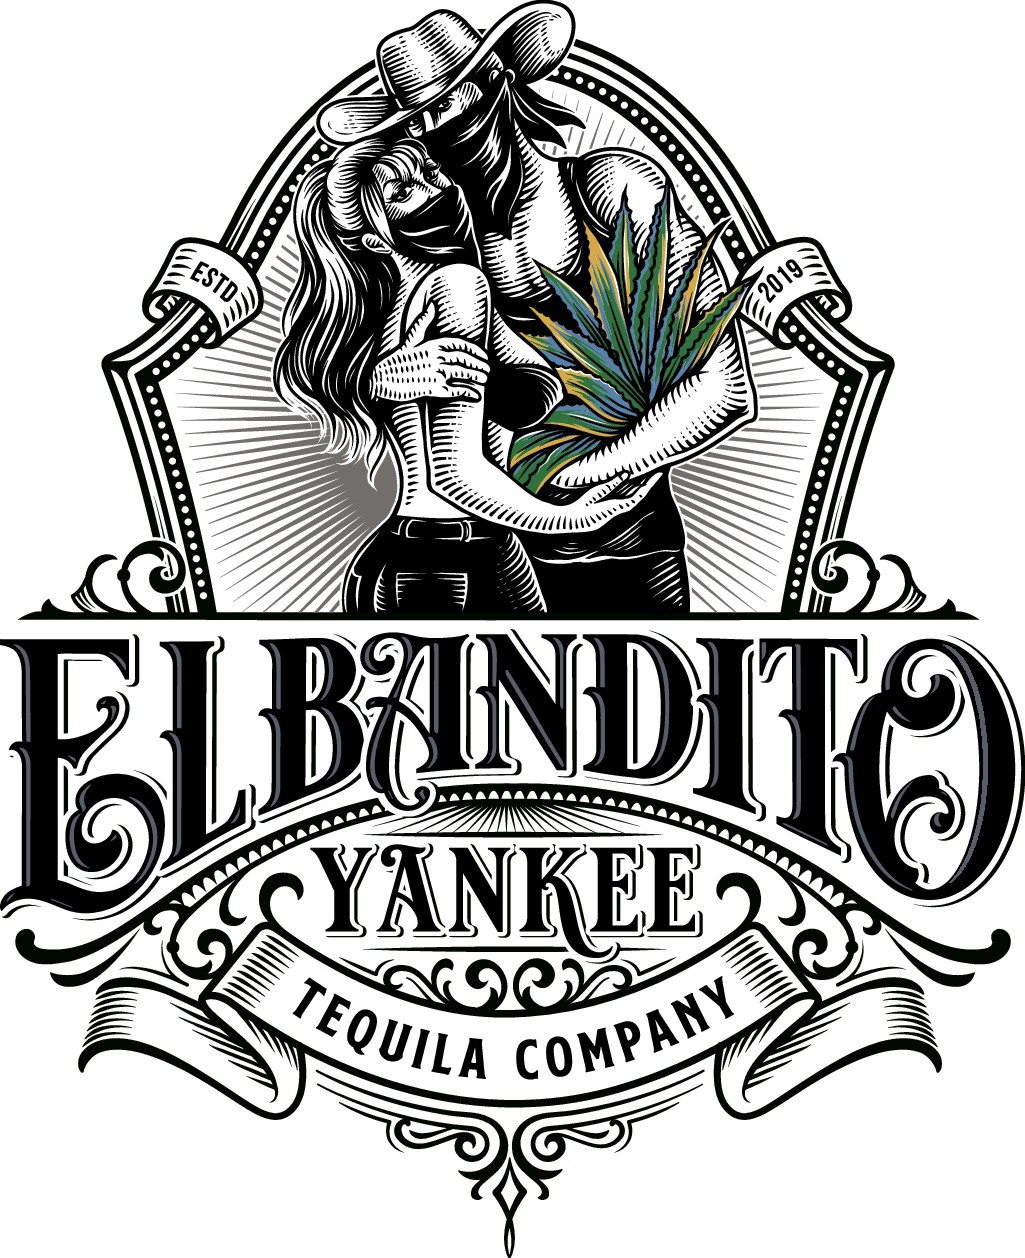 Create an illustrative logo for a new tequila company